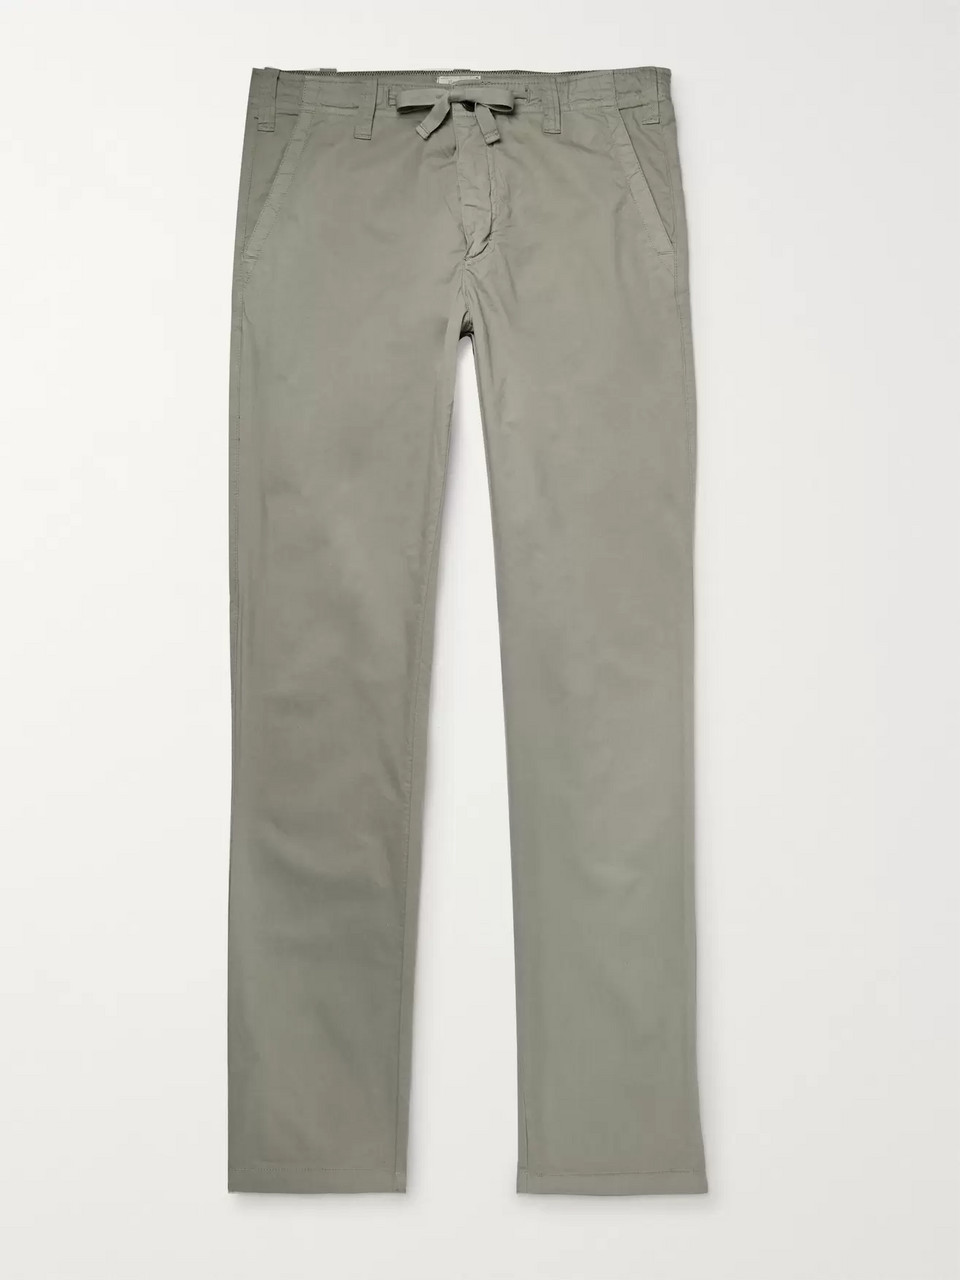 535f4460 Men's Trousers & Pants | Designer Menswear | MR PORTER